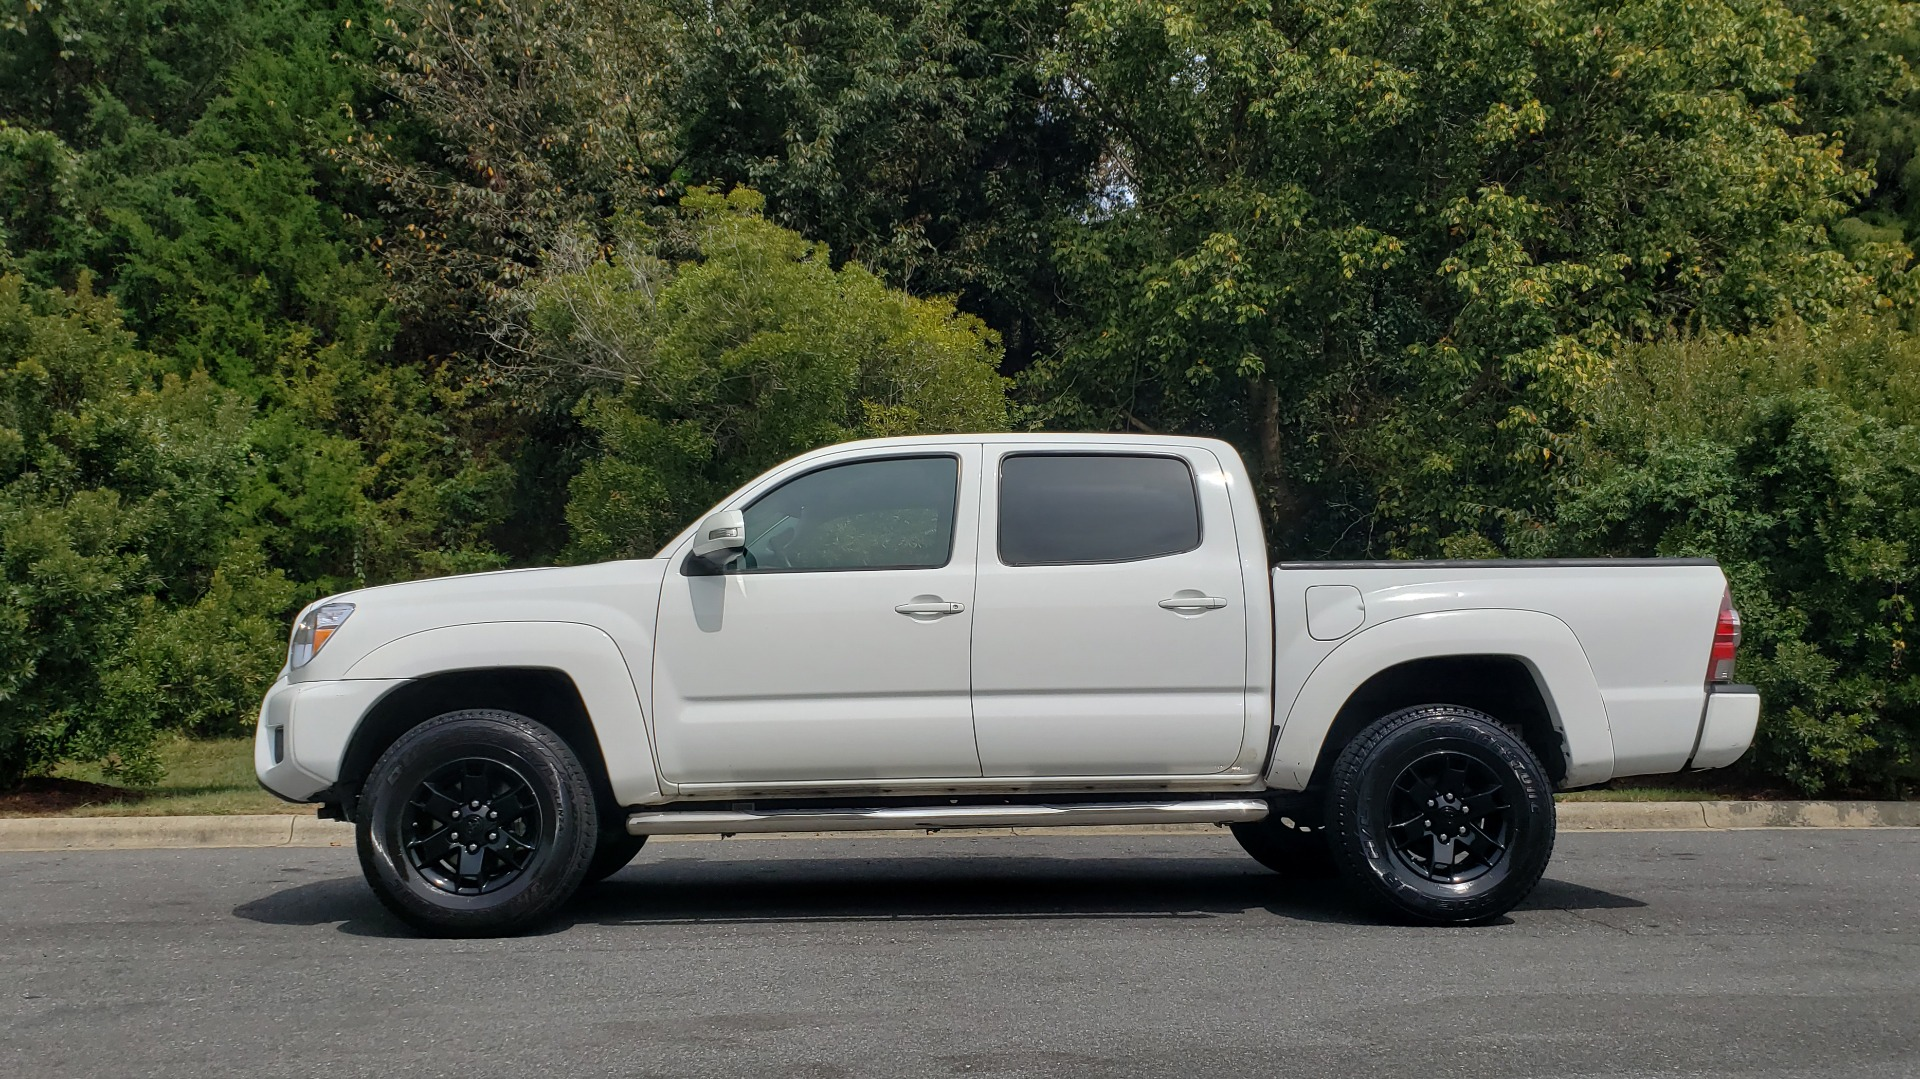 Used 2015 Toyota TACOMA PRERUNNER DOUBLE CAB/ 4-CYL / 4-SPD AUTO / SR PKG / CONV PKG for sale $15,995 at Formula Imports in Charlotte NC 28227 2